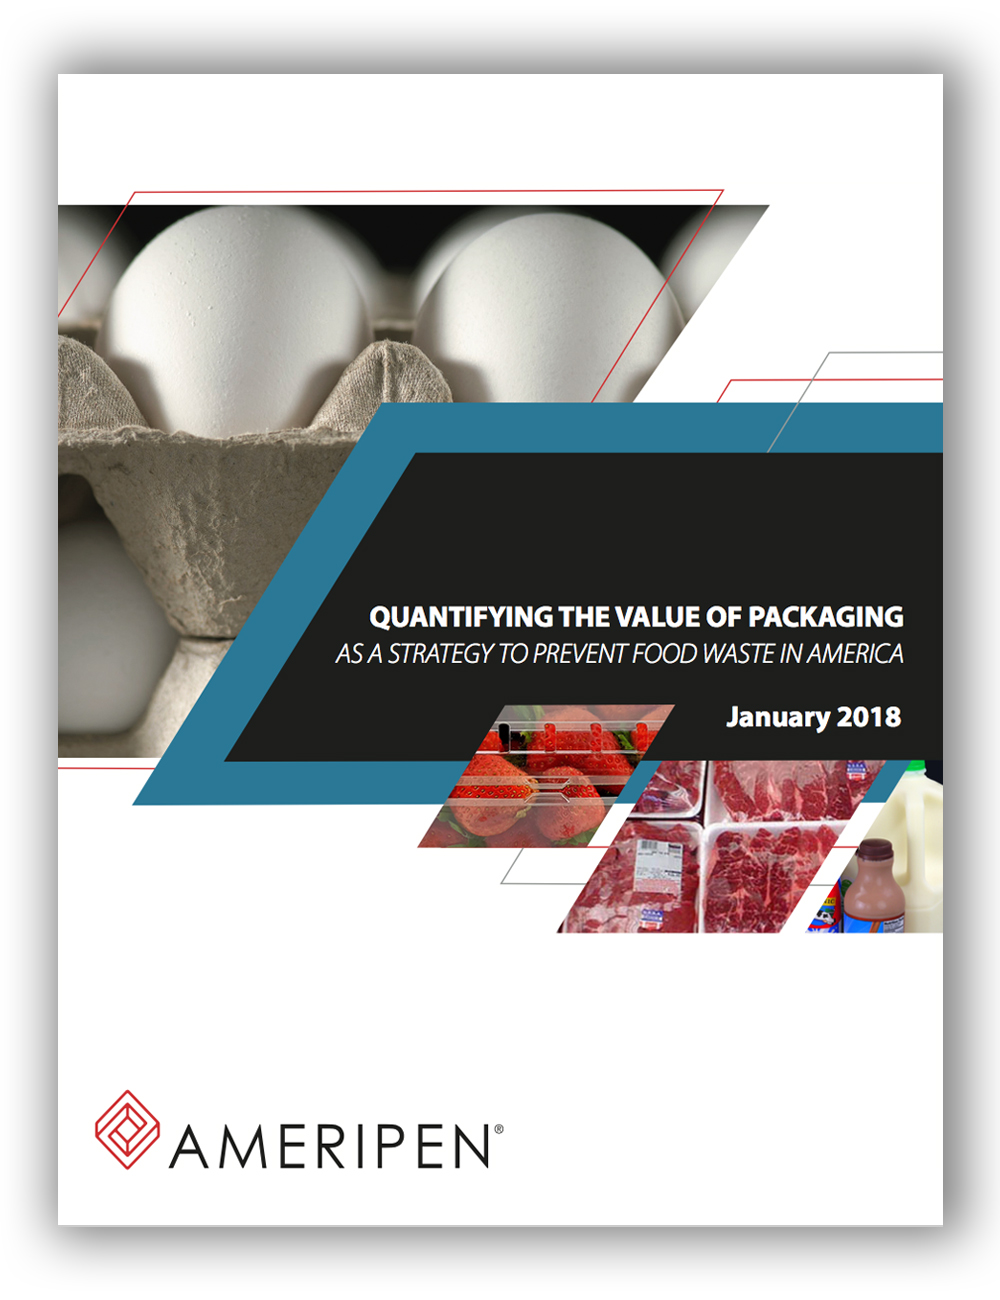 Quantifying the Value of Packaging as a Strategy to Prevent Food Waste in America